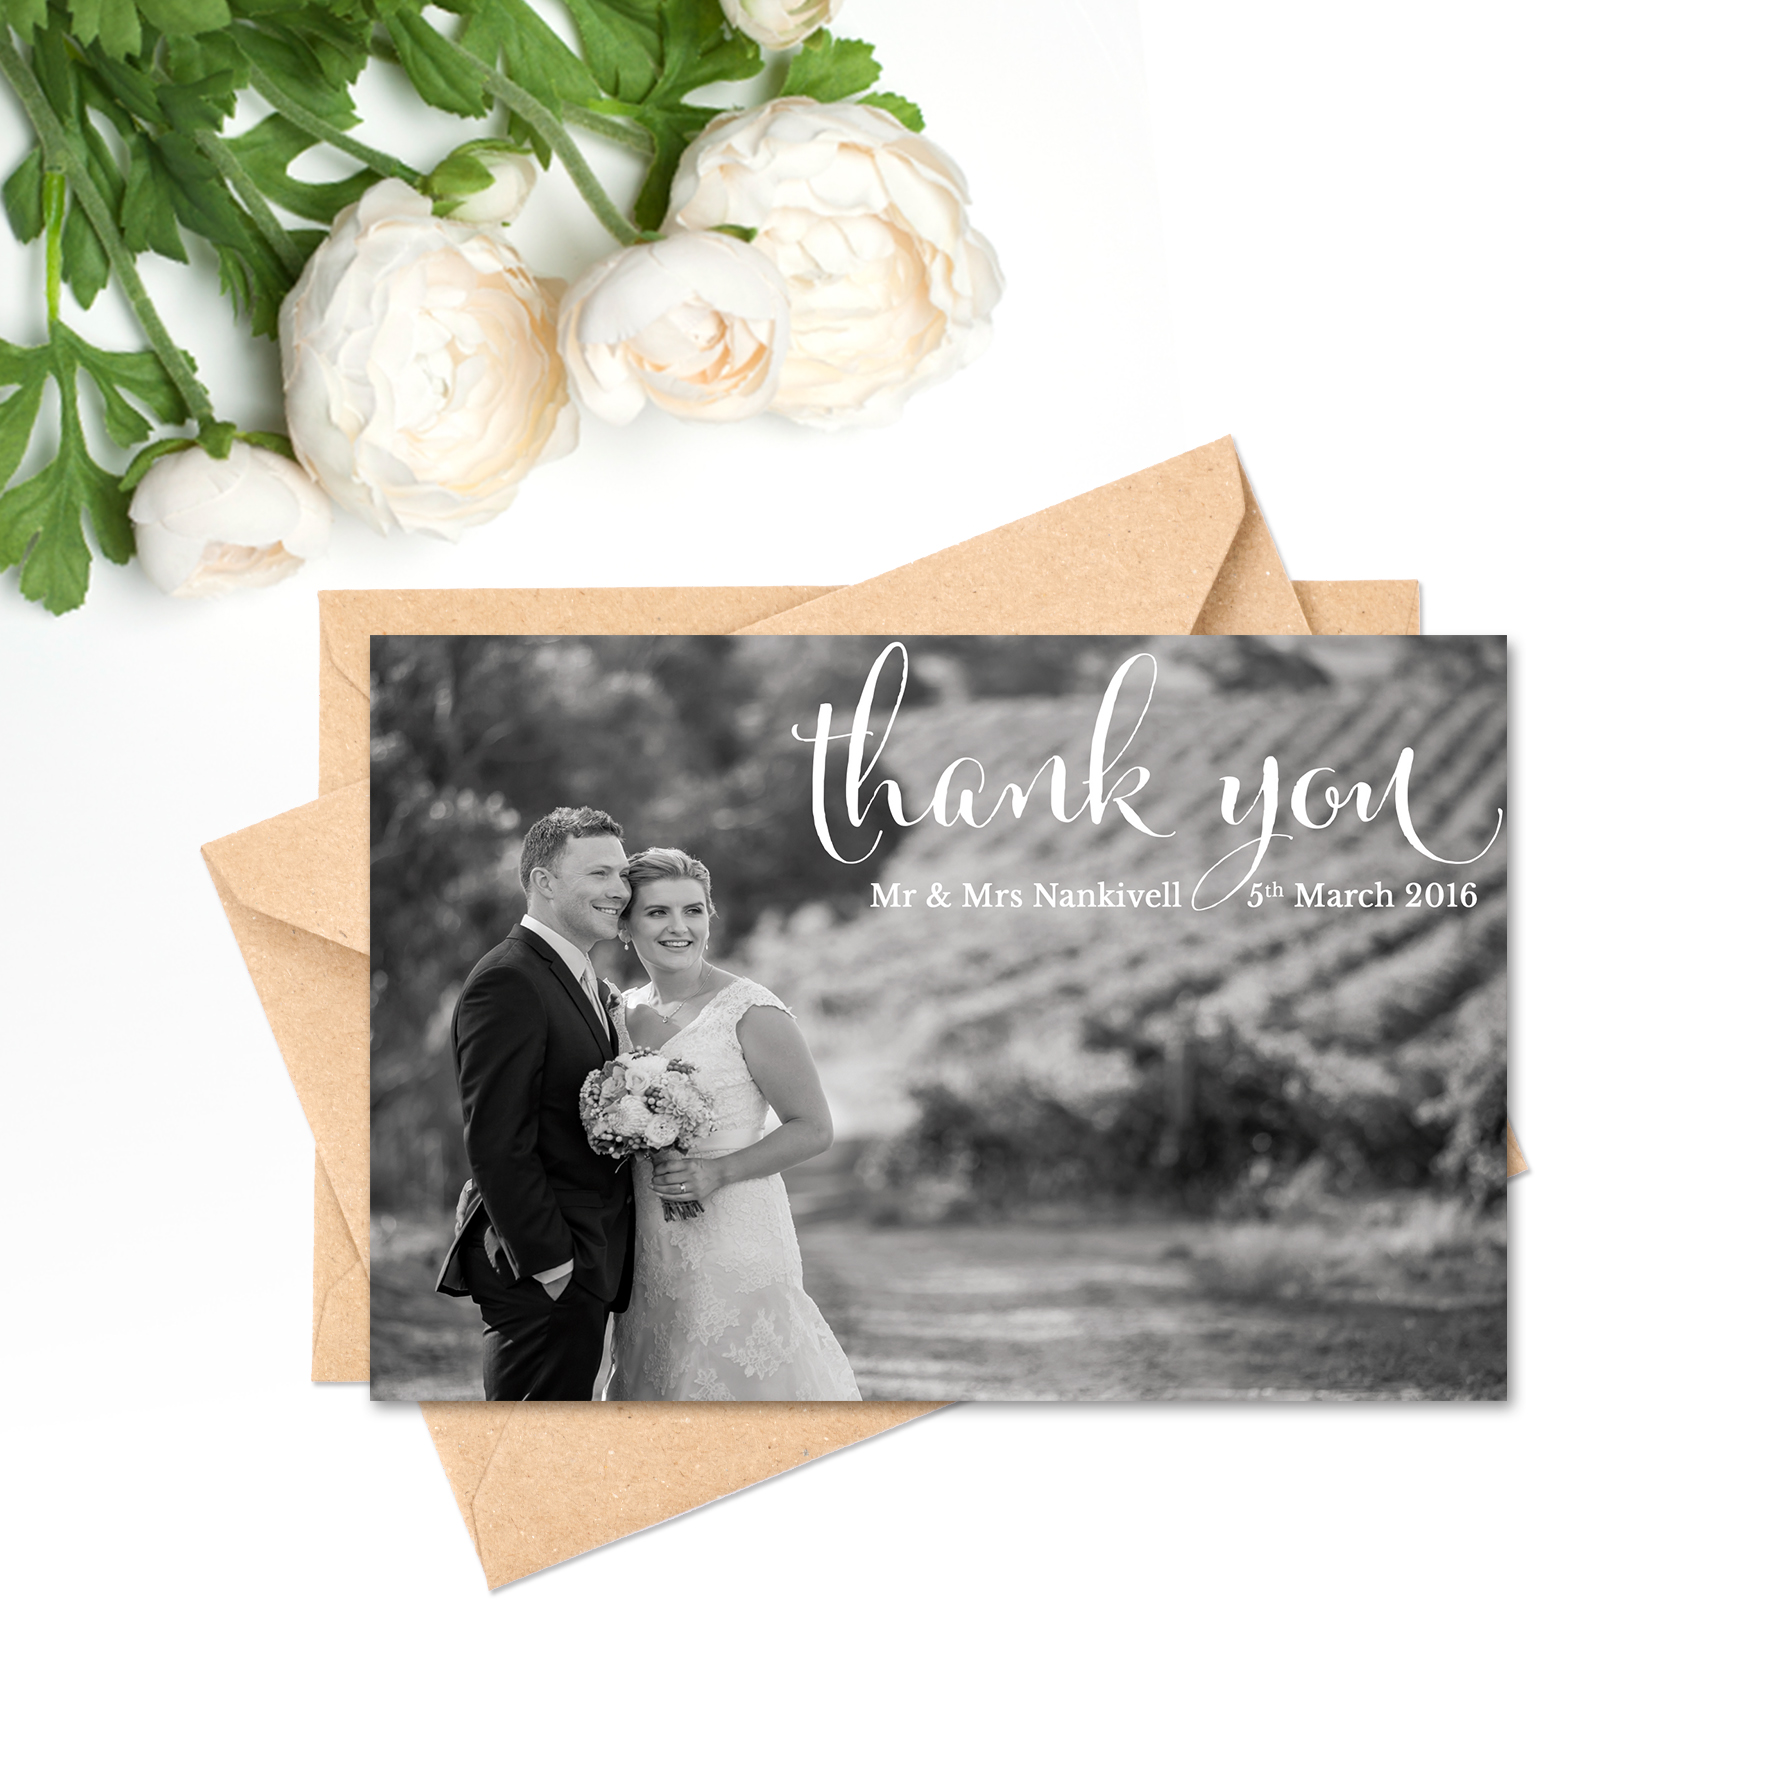 Elise + James Thank You Card